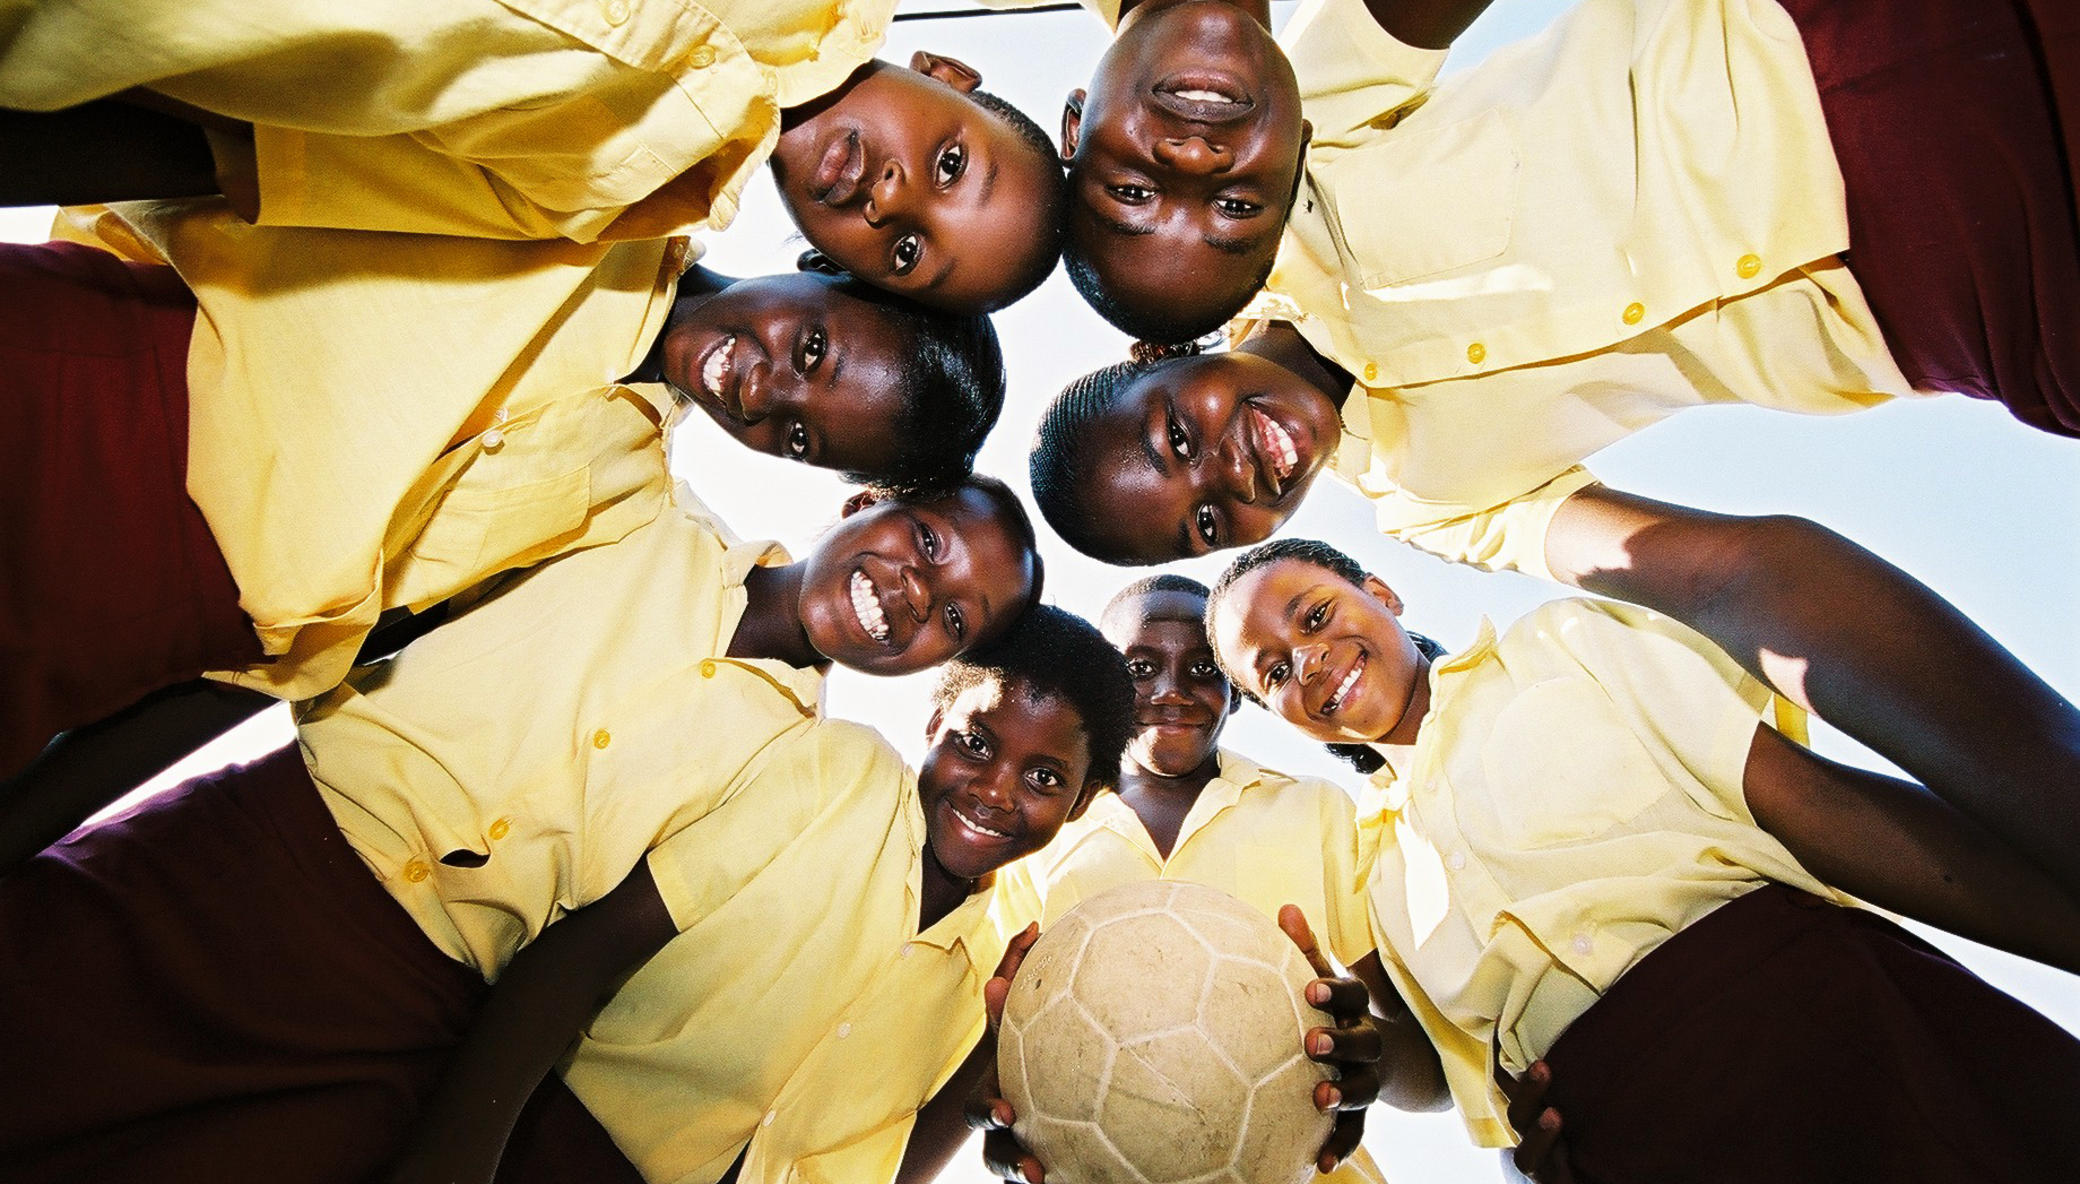 Lifeskills for 2,587 Children in South Africa